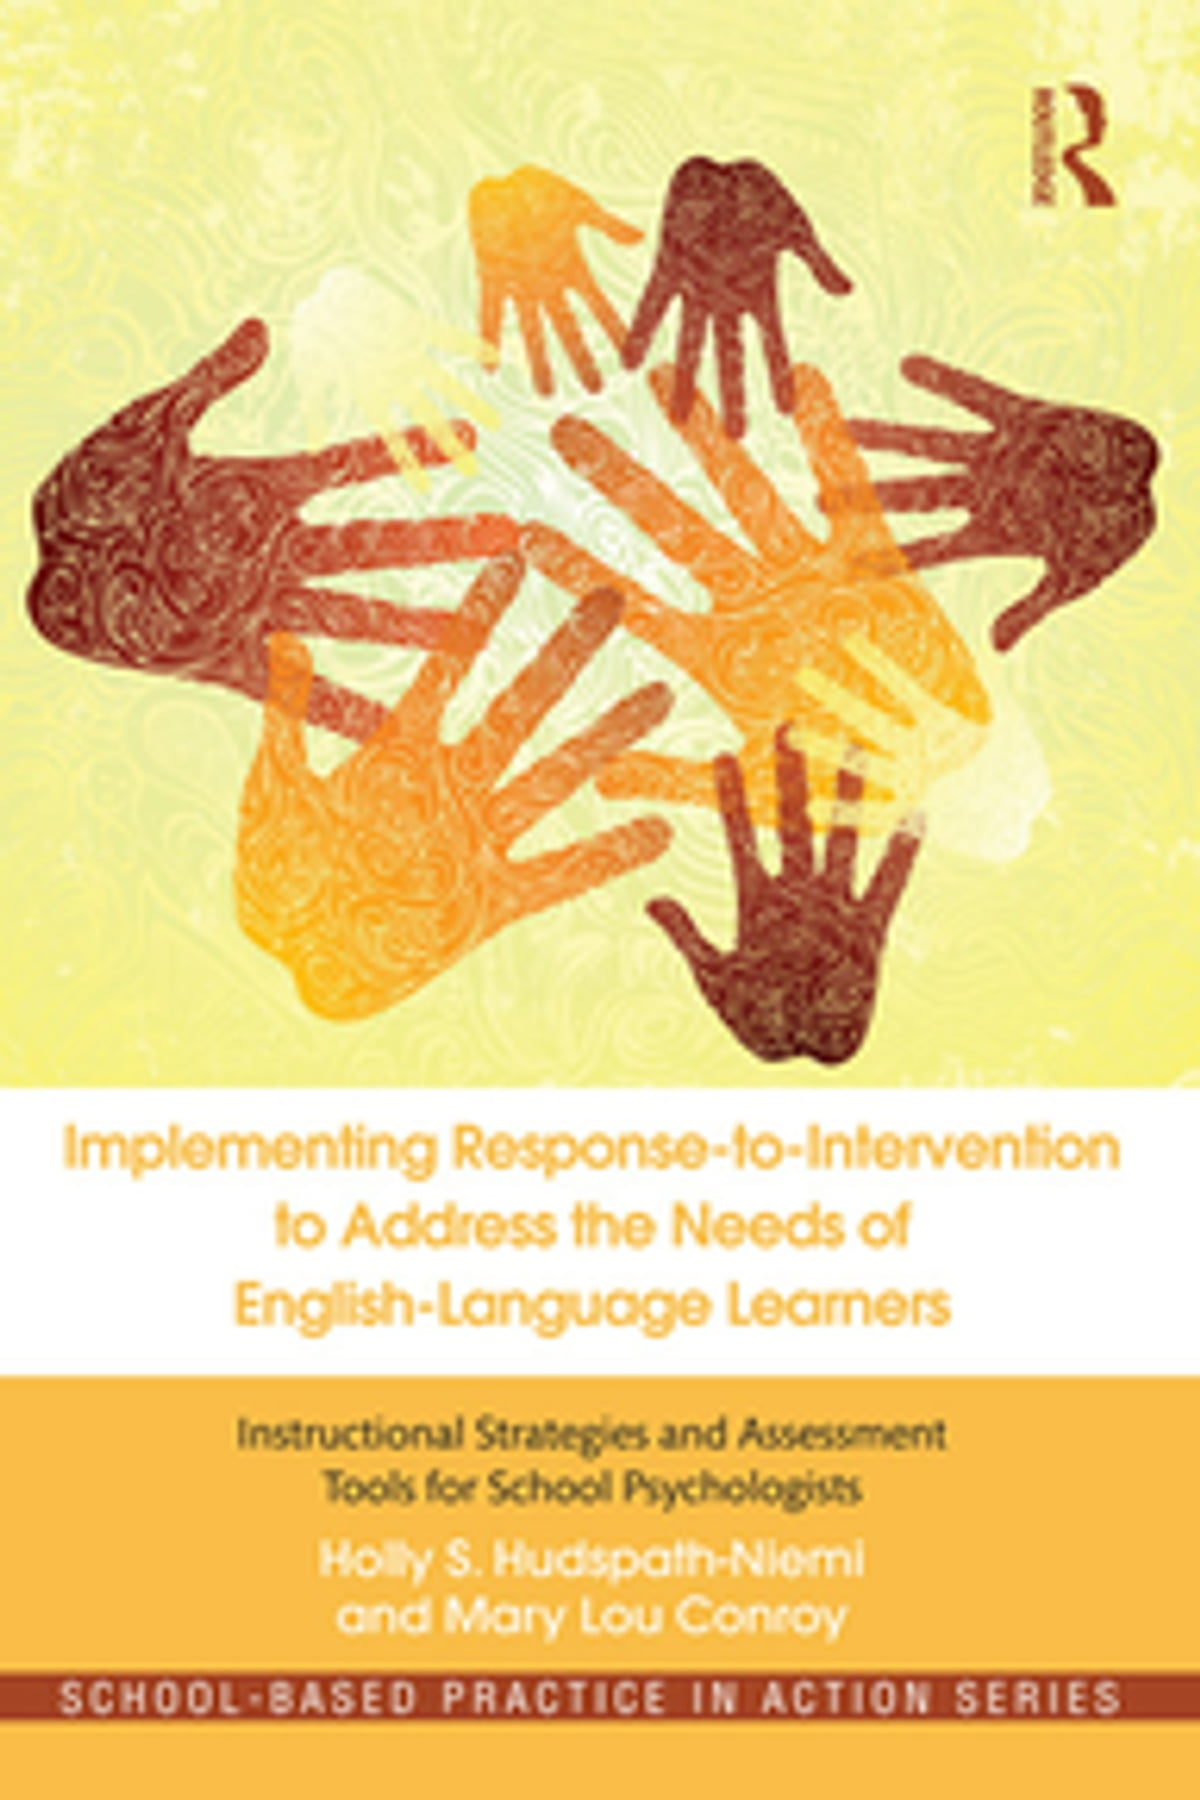 Implementing Response-to-Intervention to Address the Needs of English-Language  Learners eBook by Holly S. Hudspath-Niemi - 9781136257124   Rakuten Kobo